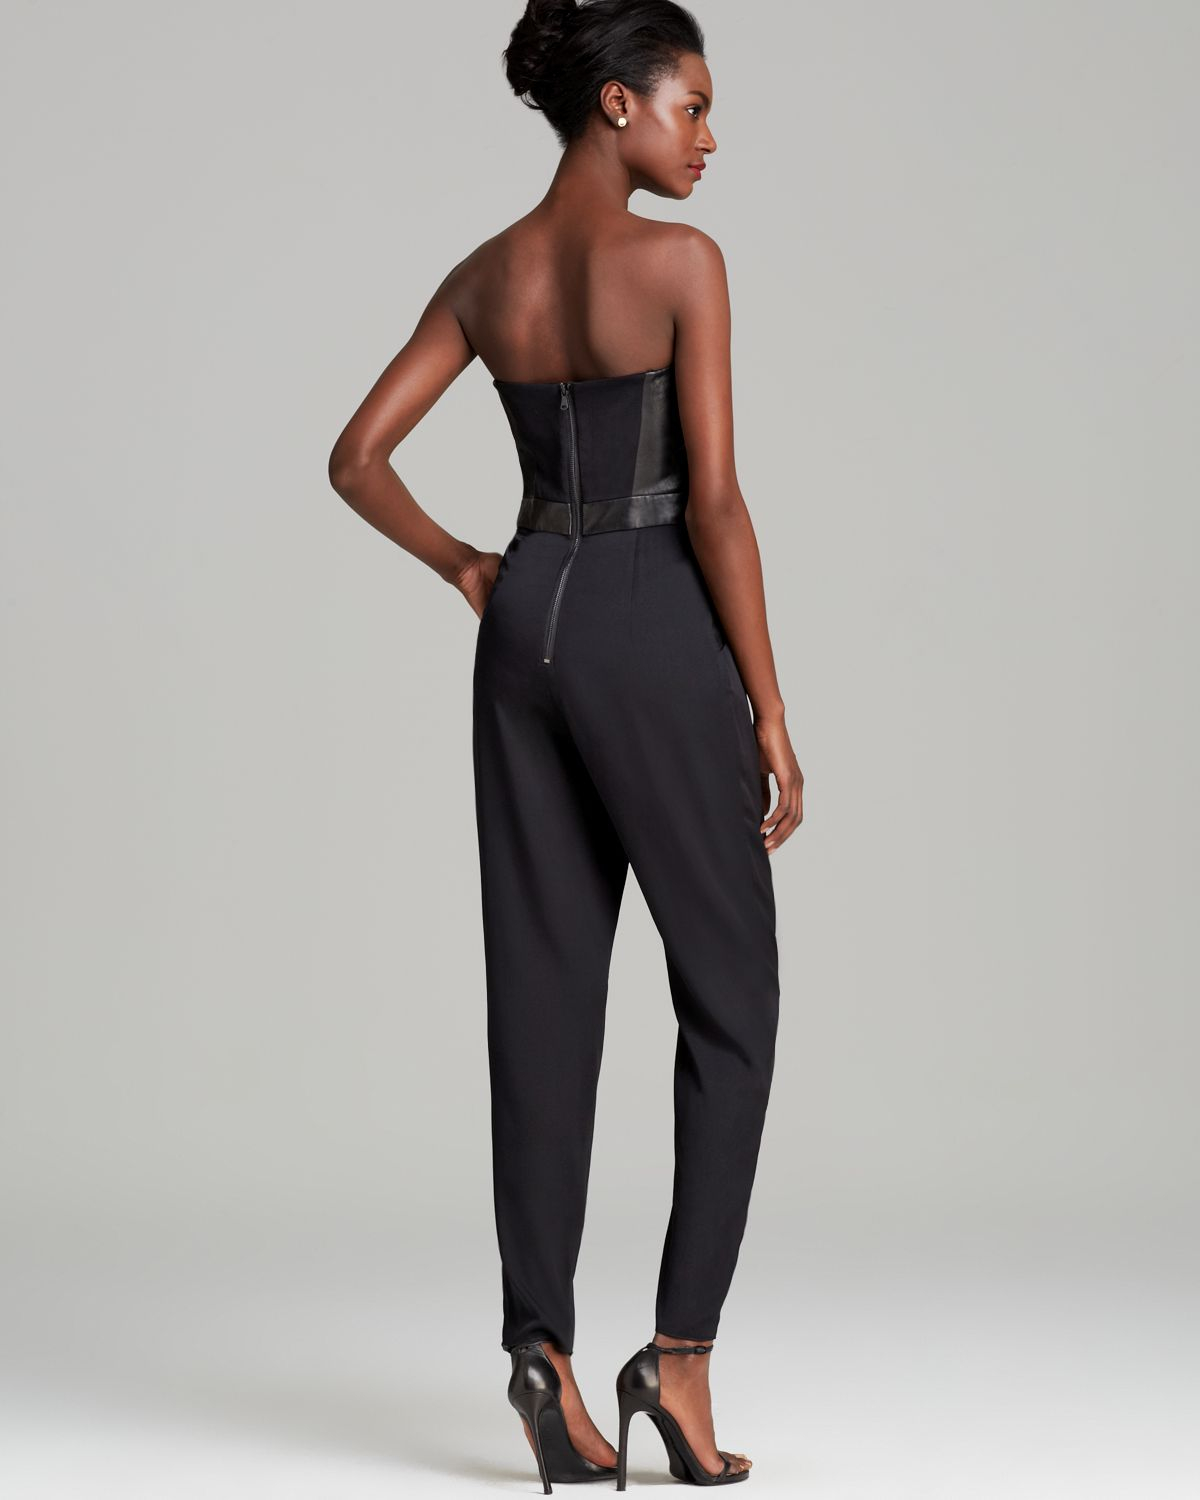 a730124328f6 MILLY - Black Jumpsuit Bustier - Lyst